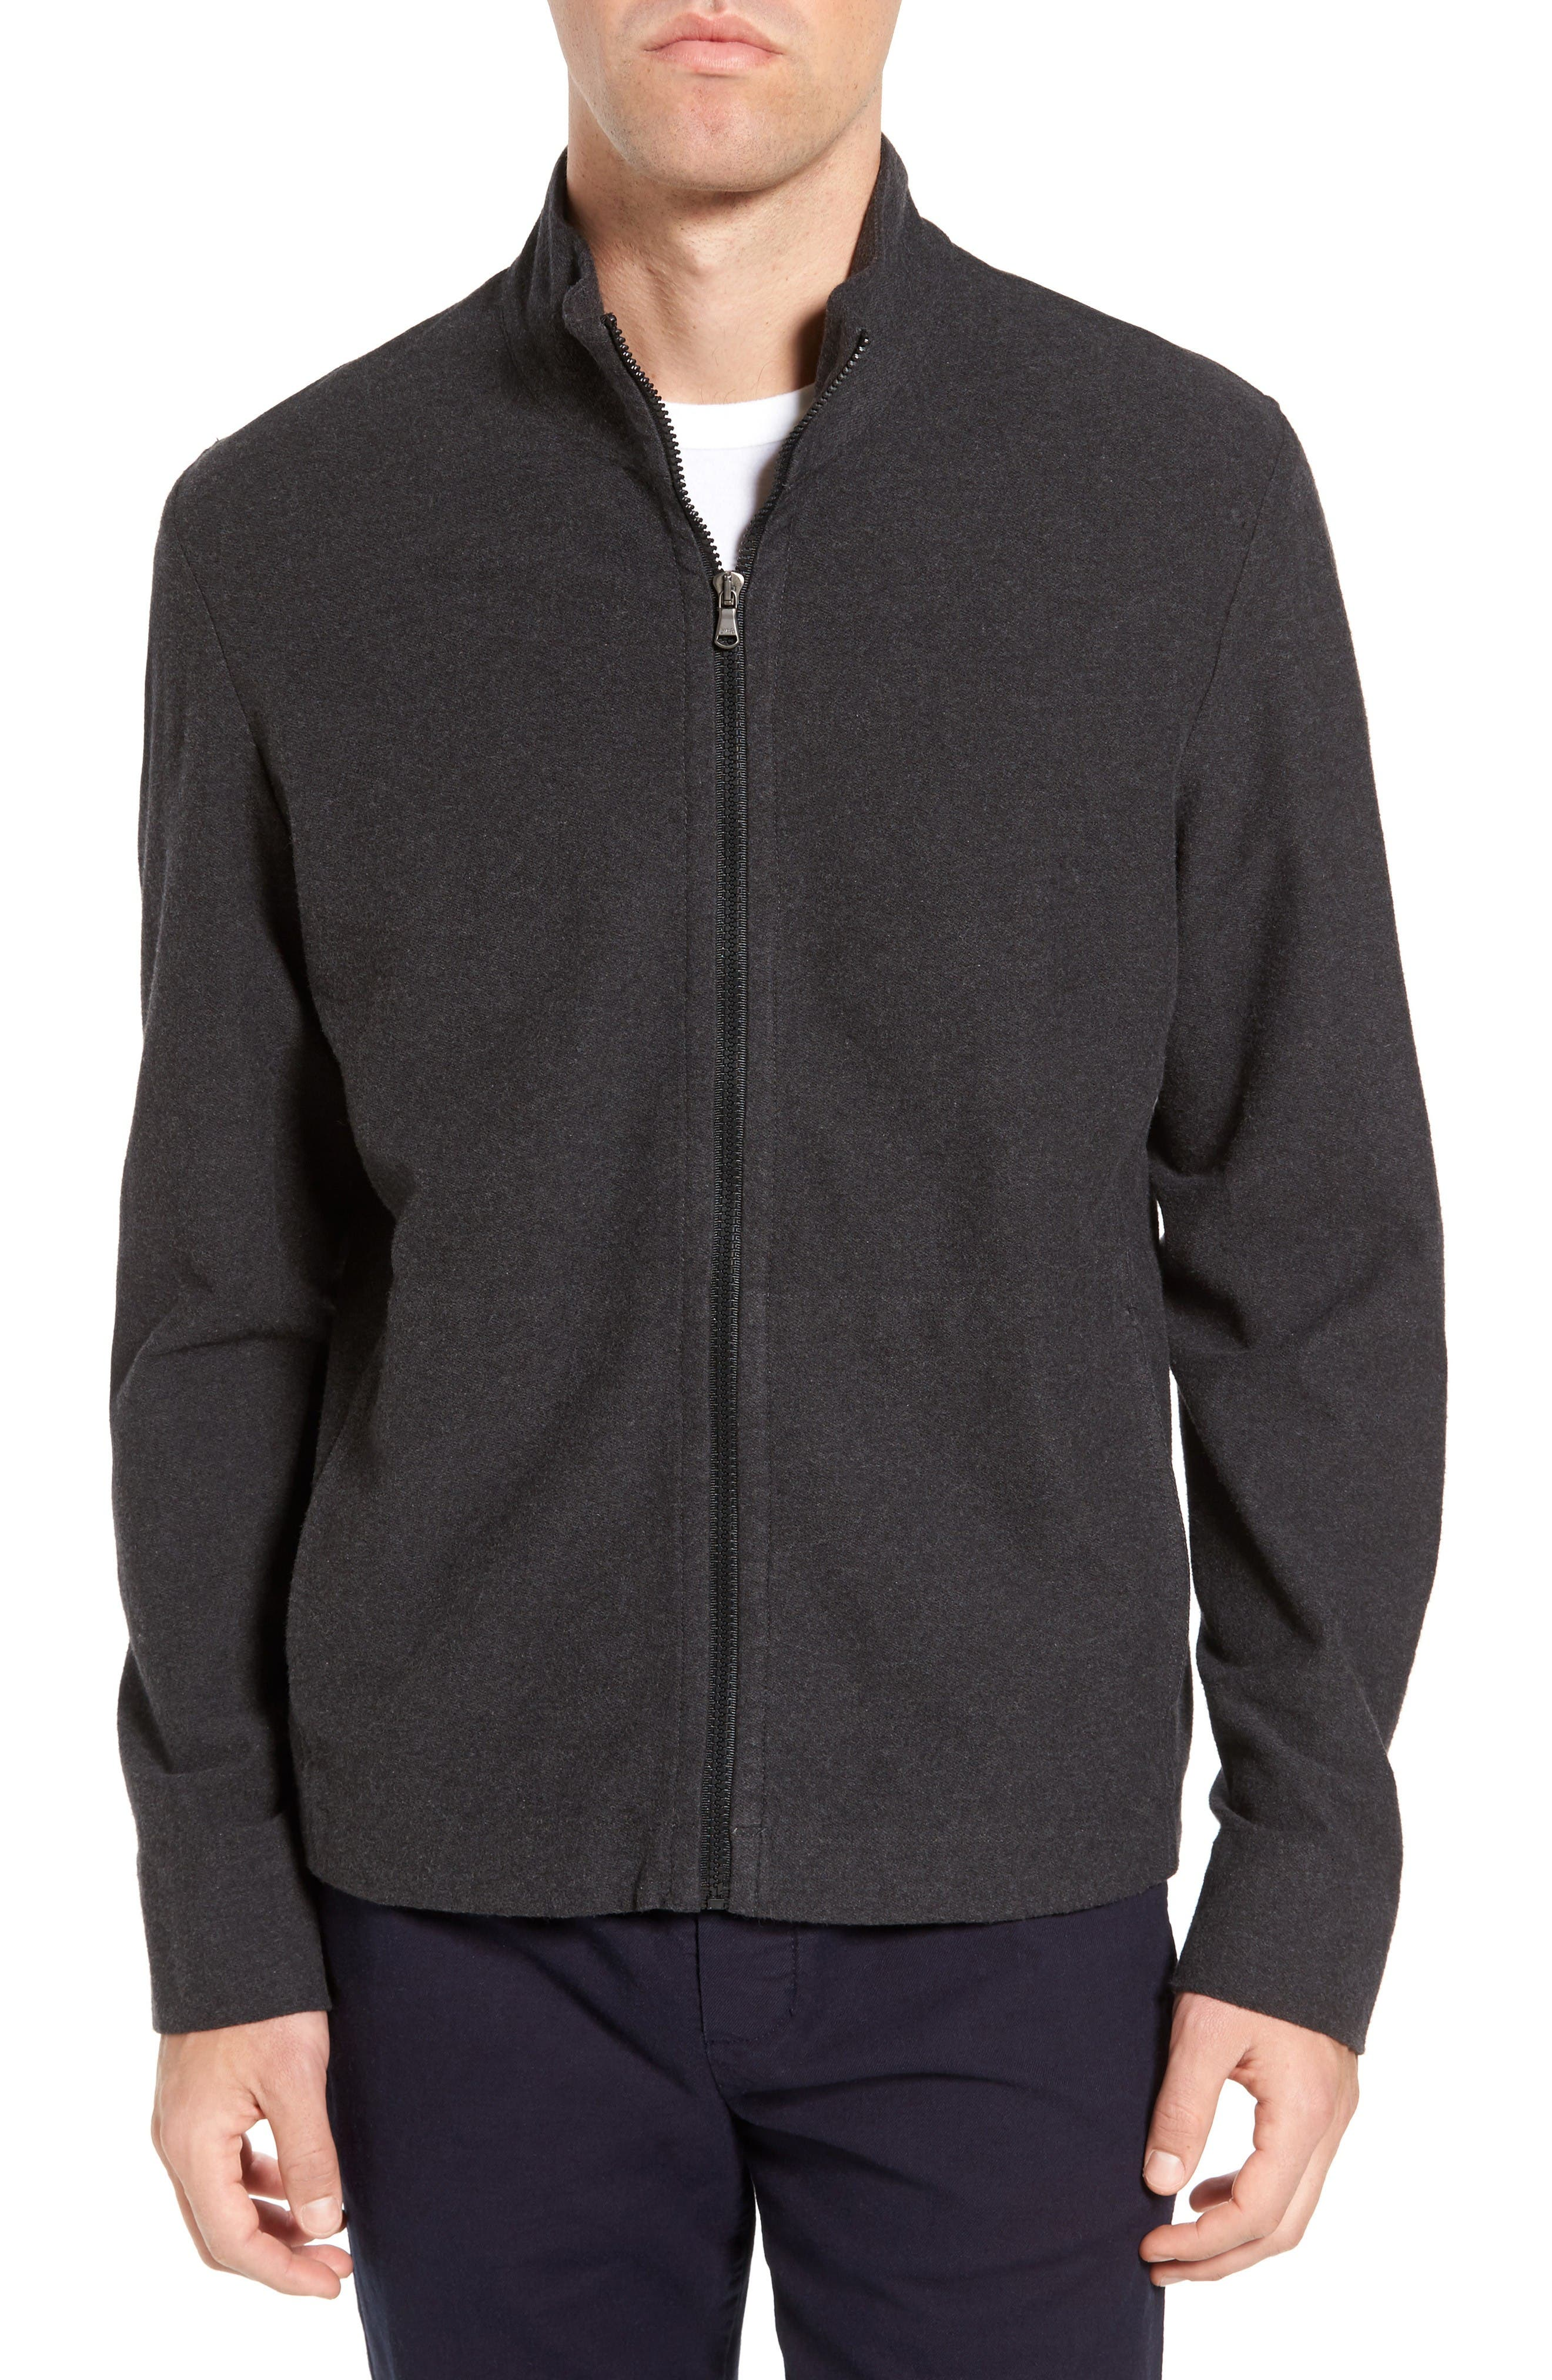 James Perse Zip-Up Heathered Knit Jacket